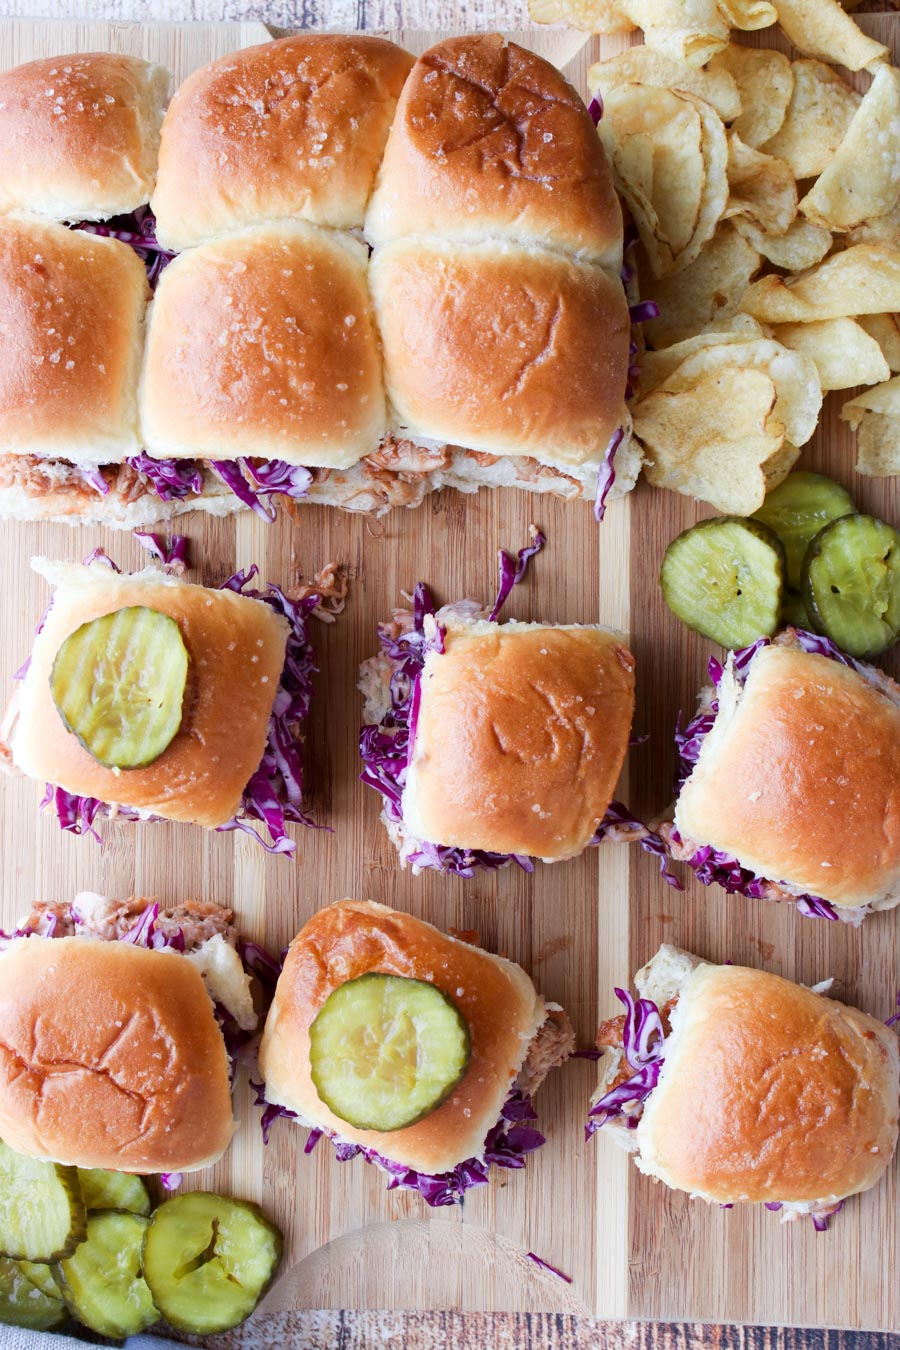 BBQ Sliders on a serving board with pickles and chips